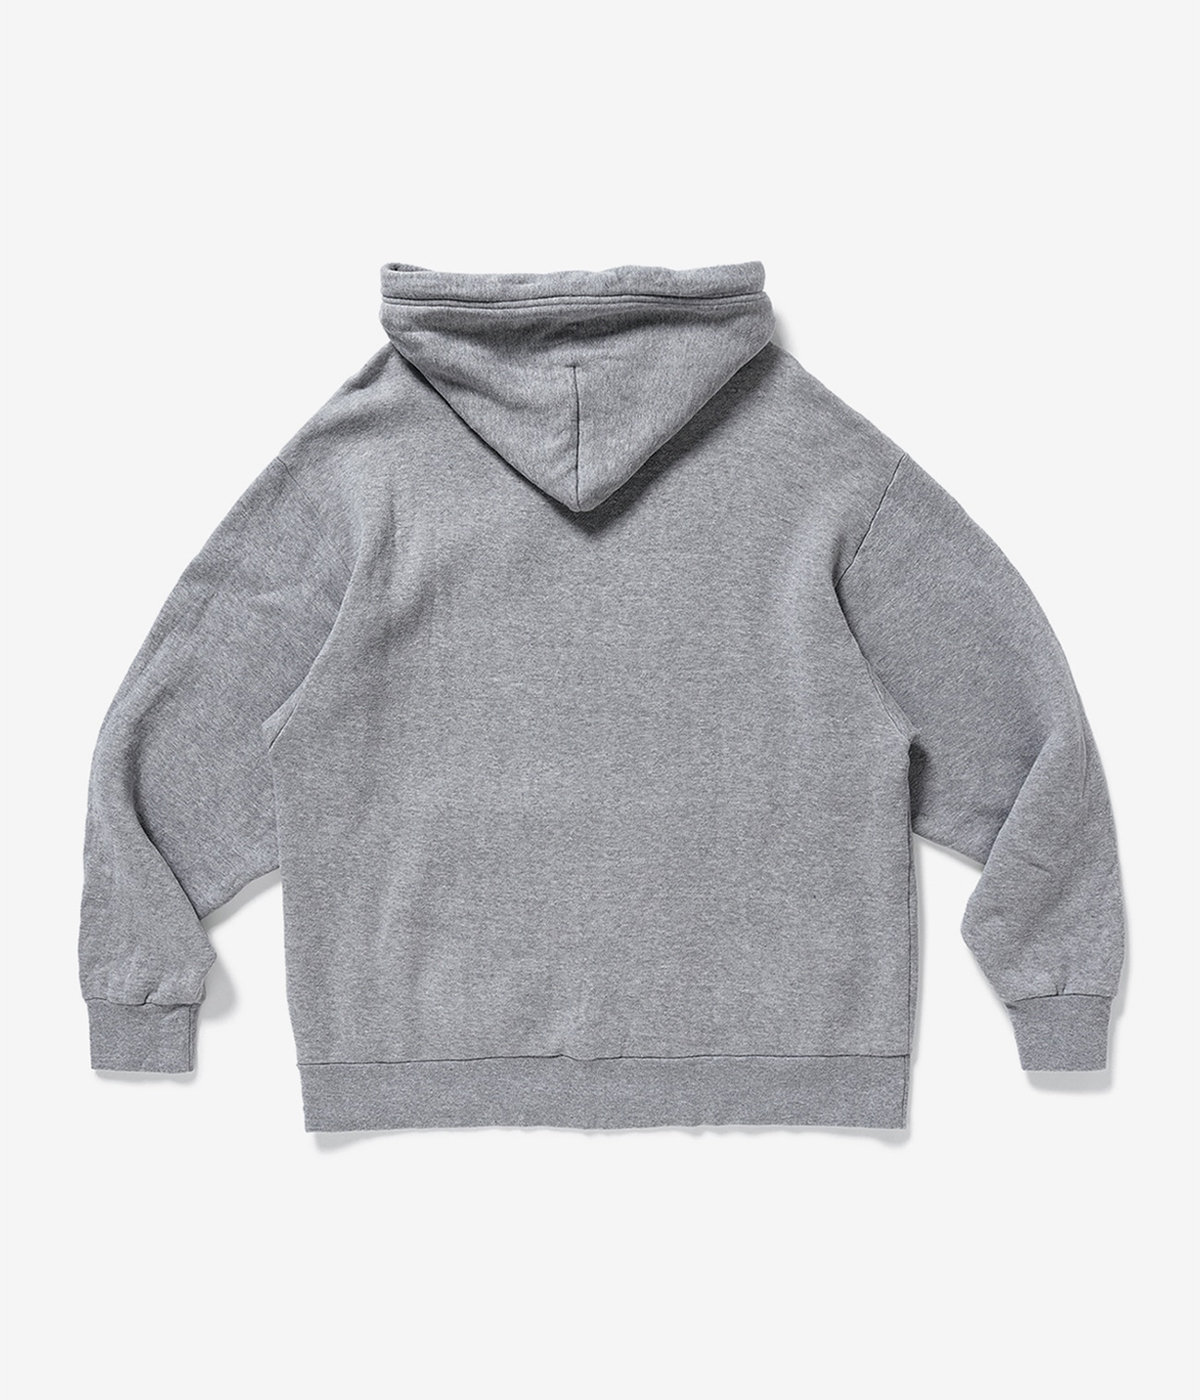 ACADEMY / HOODED / COTTON